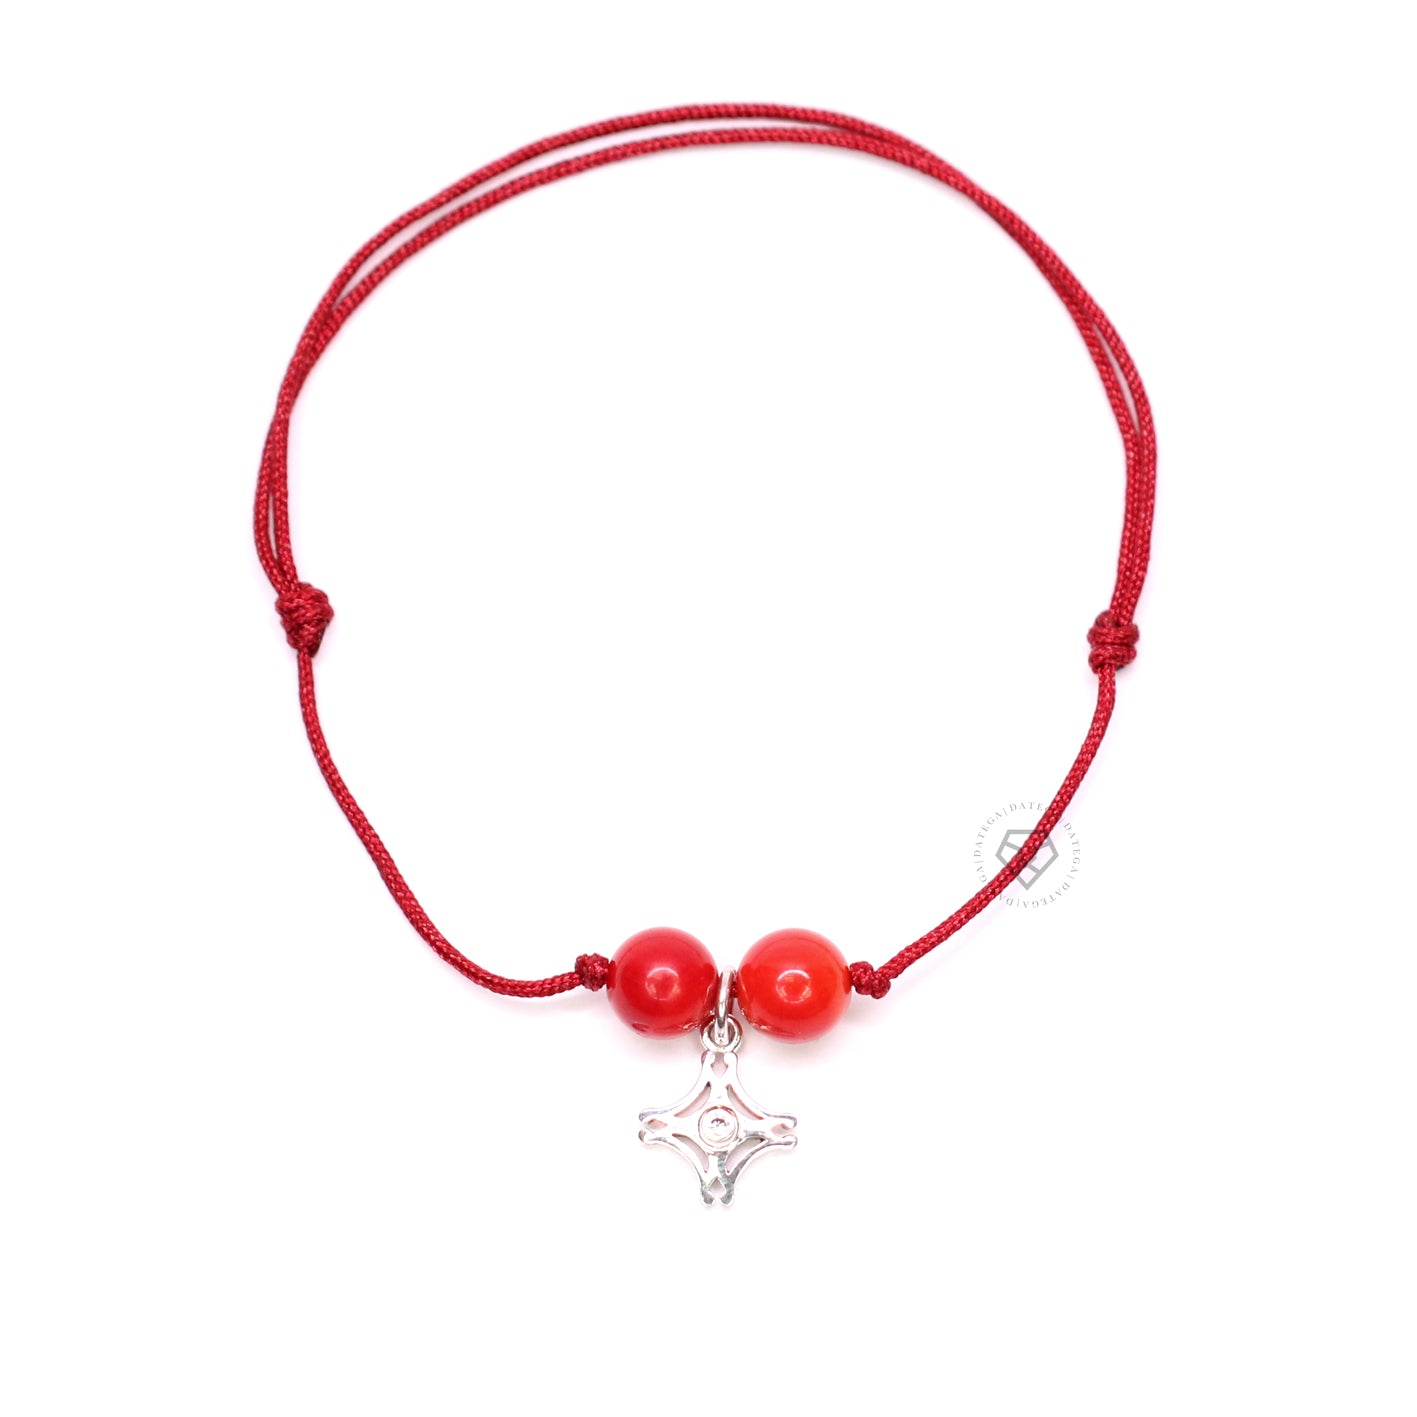 Insignia Emblema Coral - Red Rope